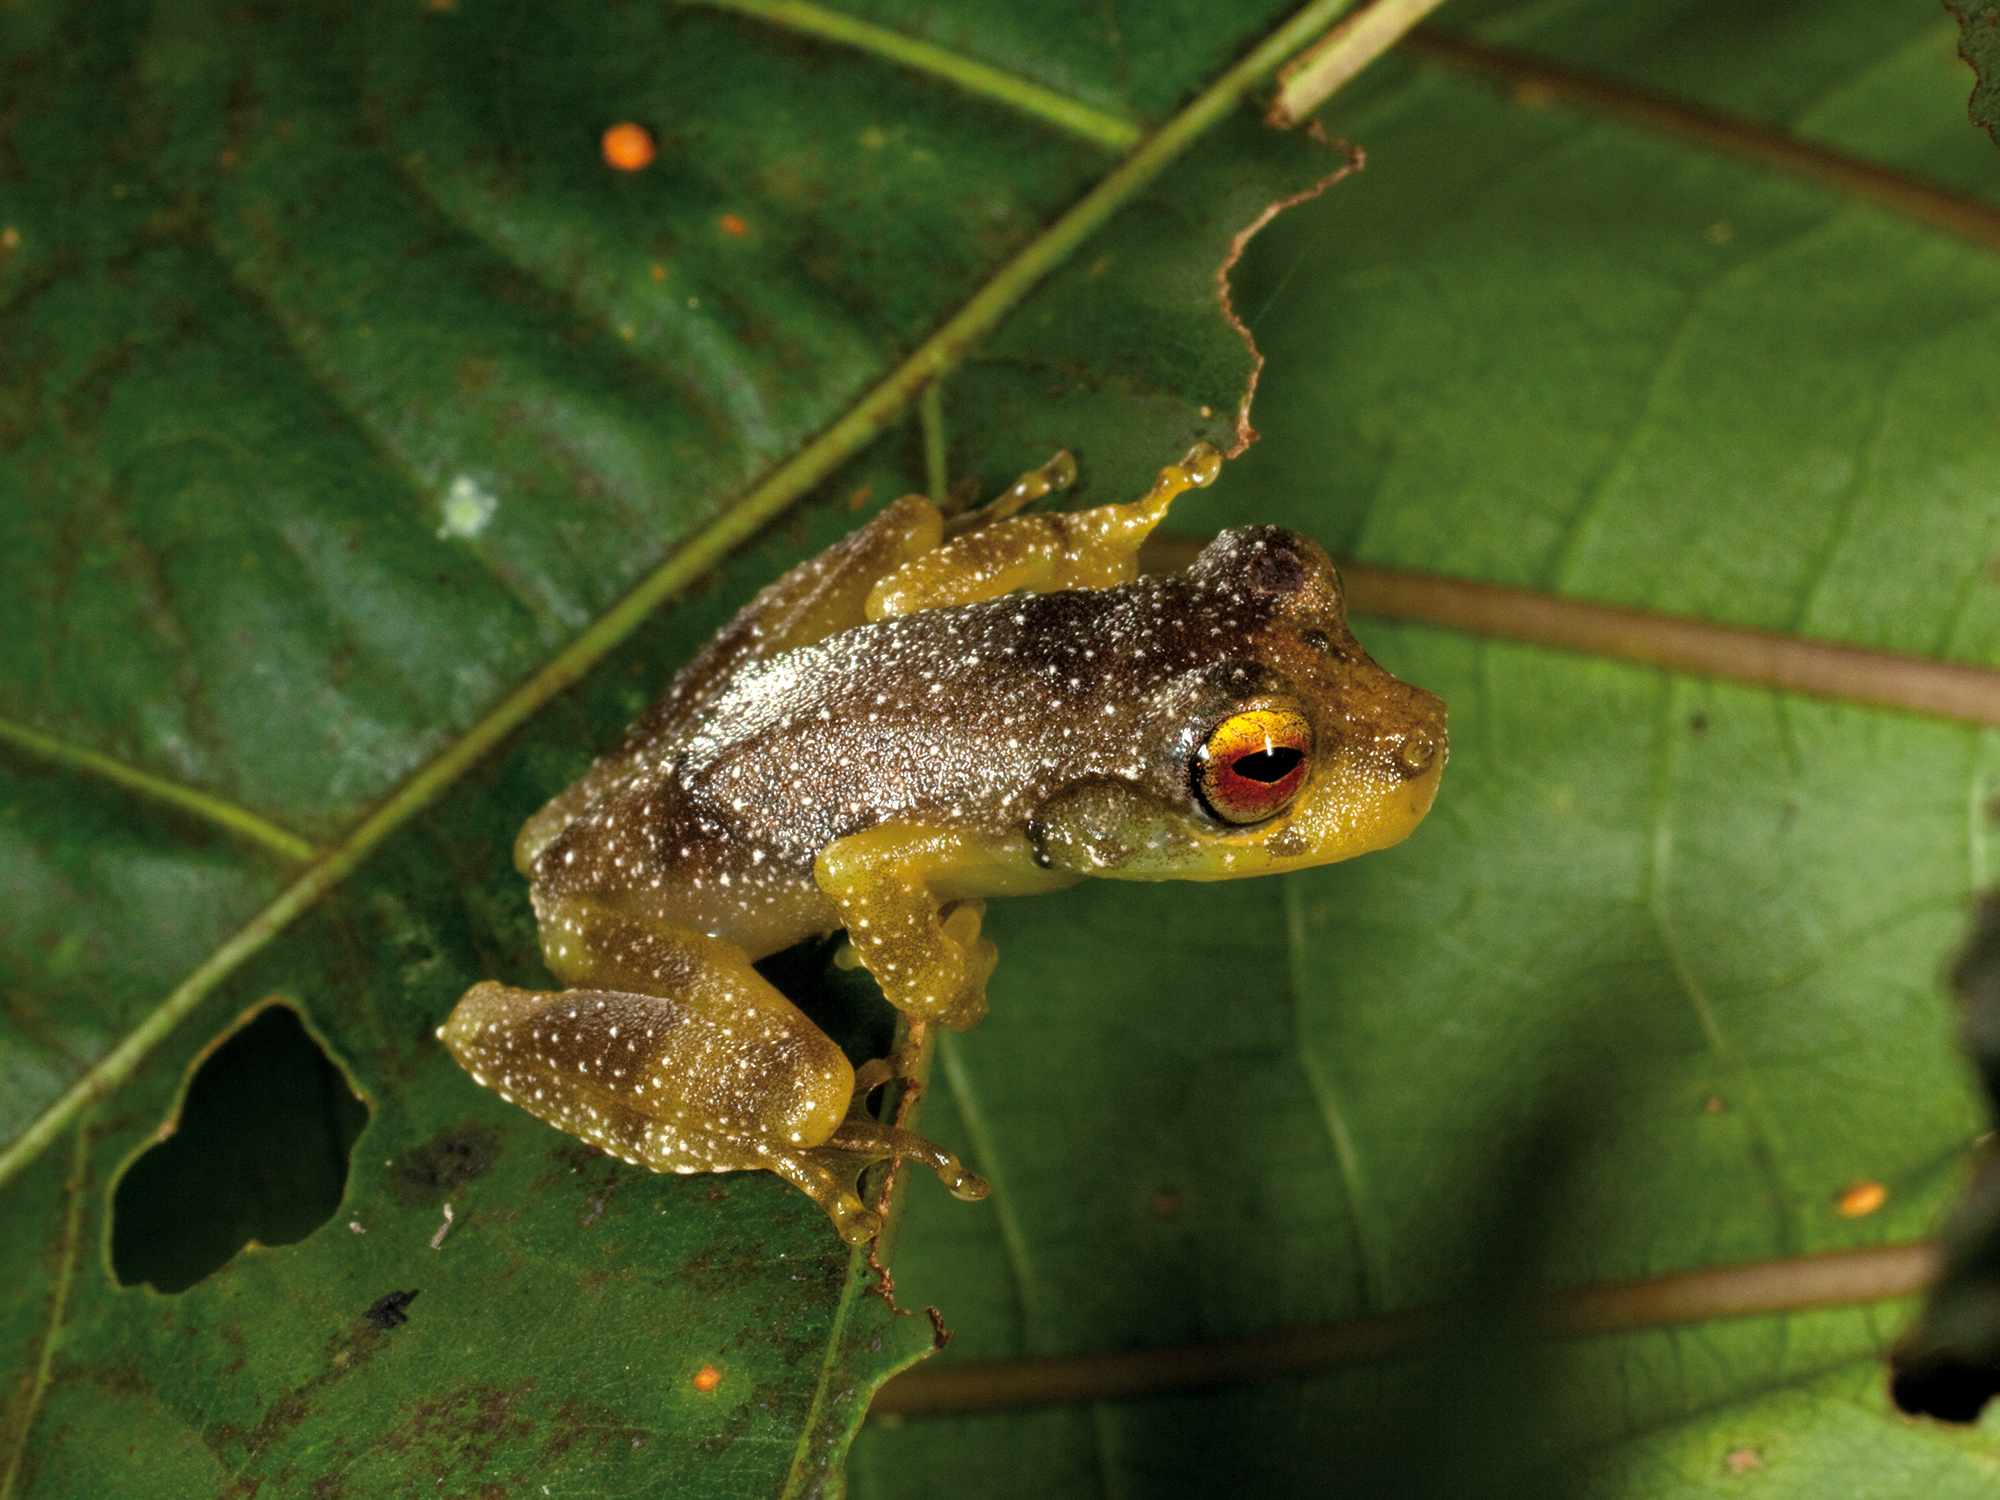 FRINGED TREE FROG (Litoria eucnemis)